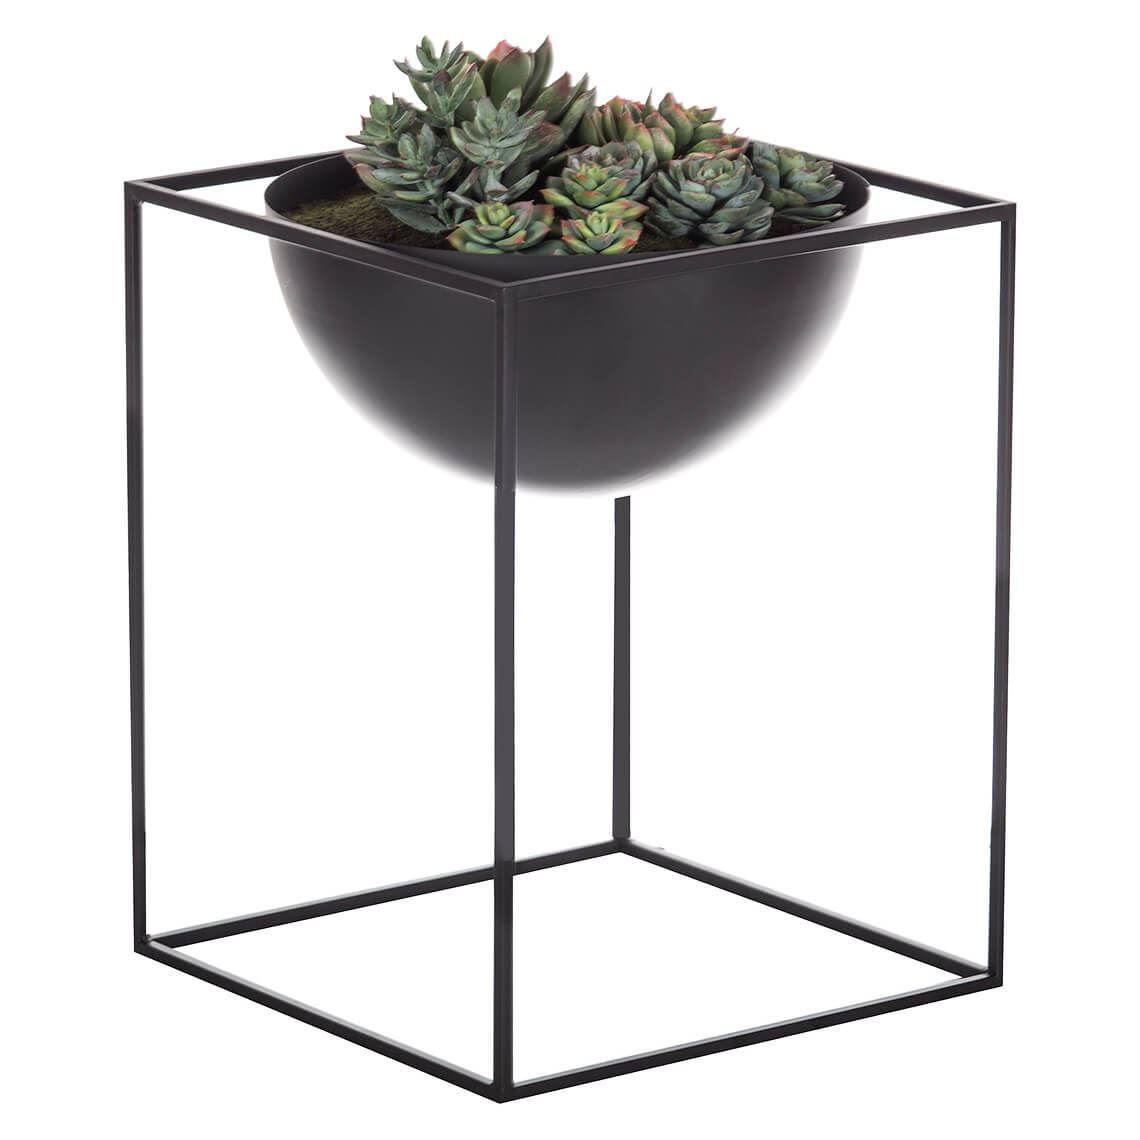 Lotus Echeveria Mix Cube Planter Size W 20cm x D 20cm x H 34cm in Black Freedom